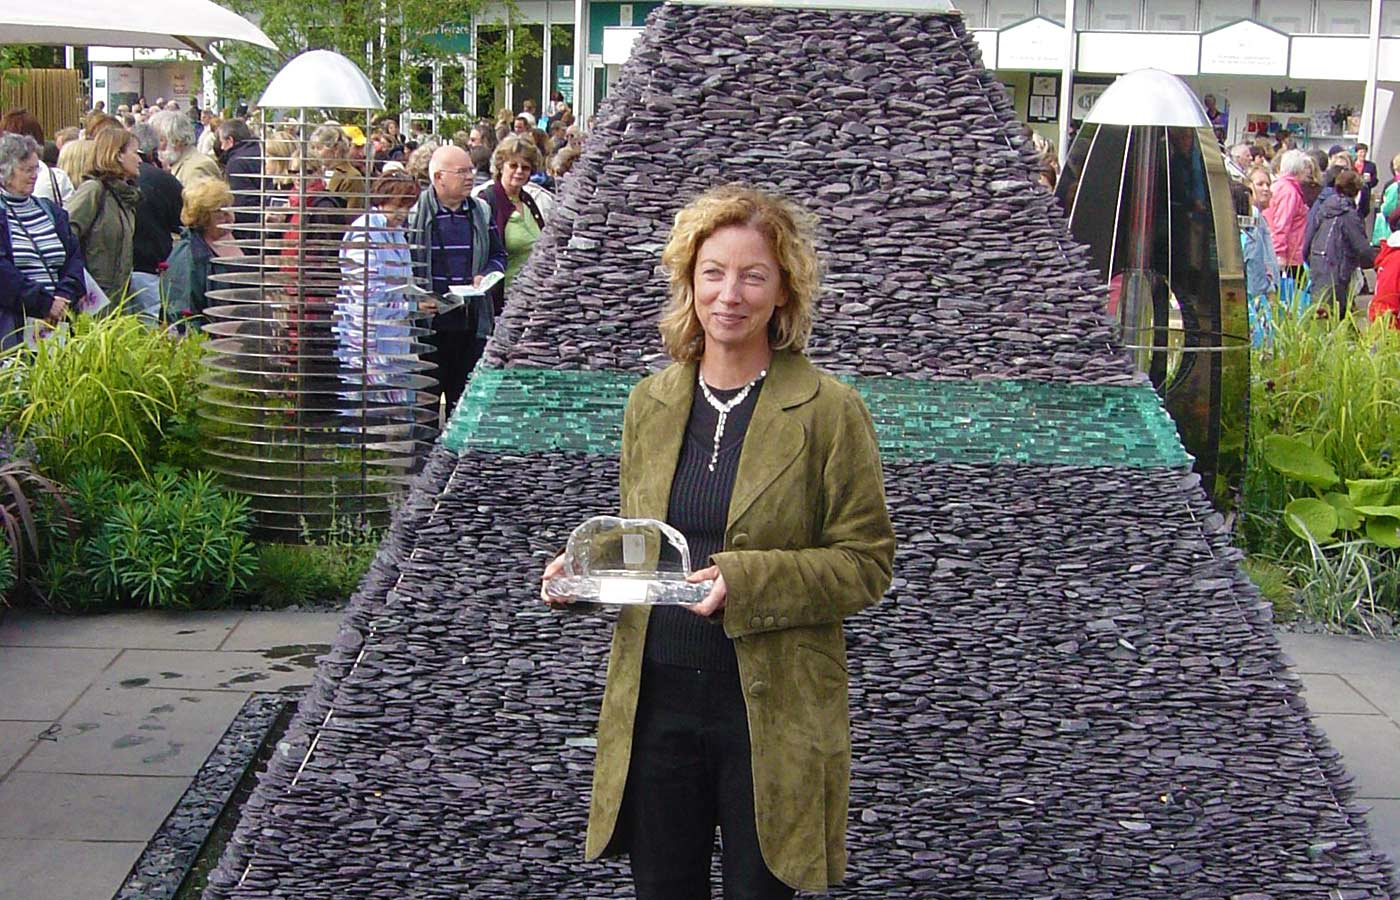 Award for flower show design